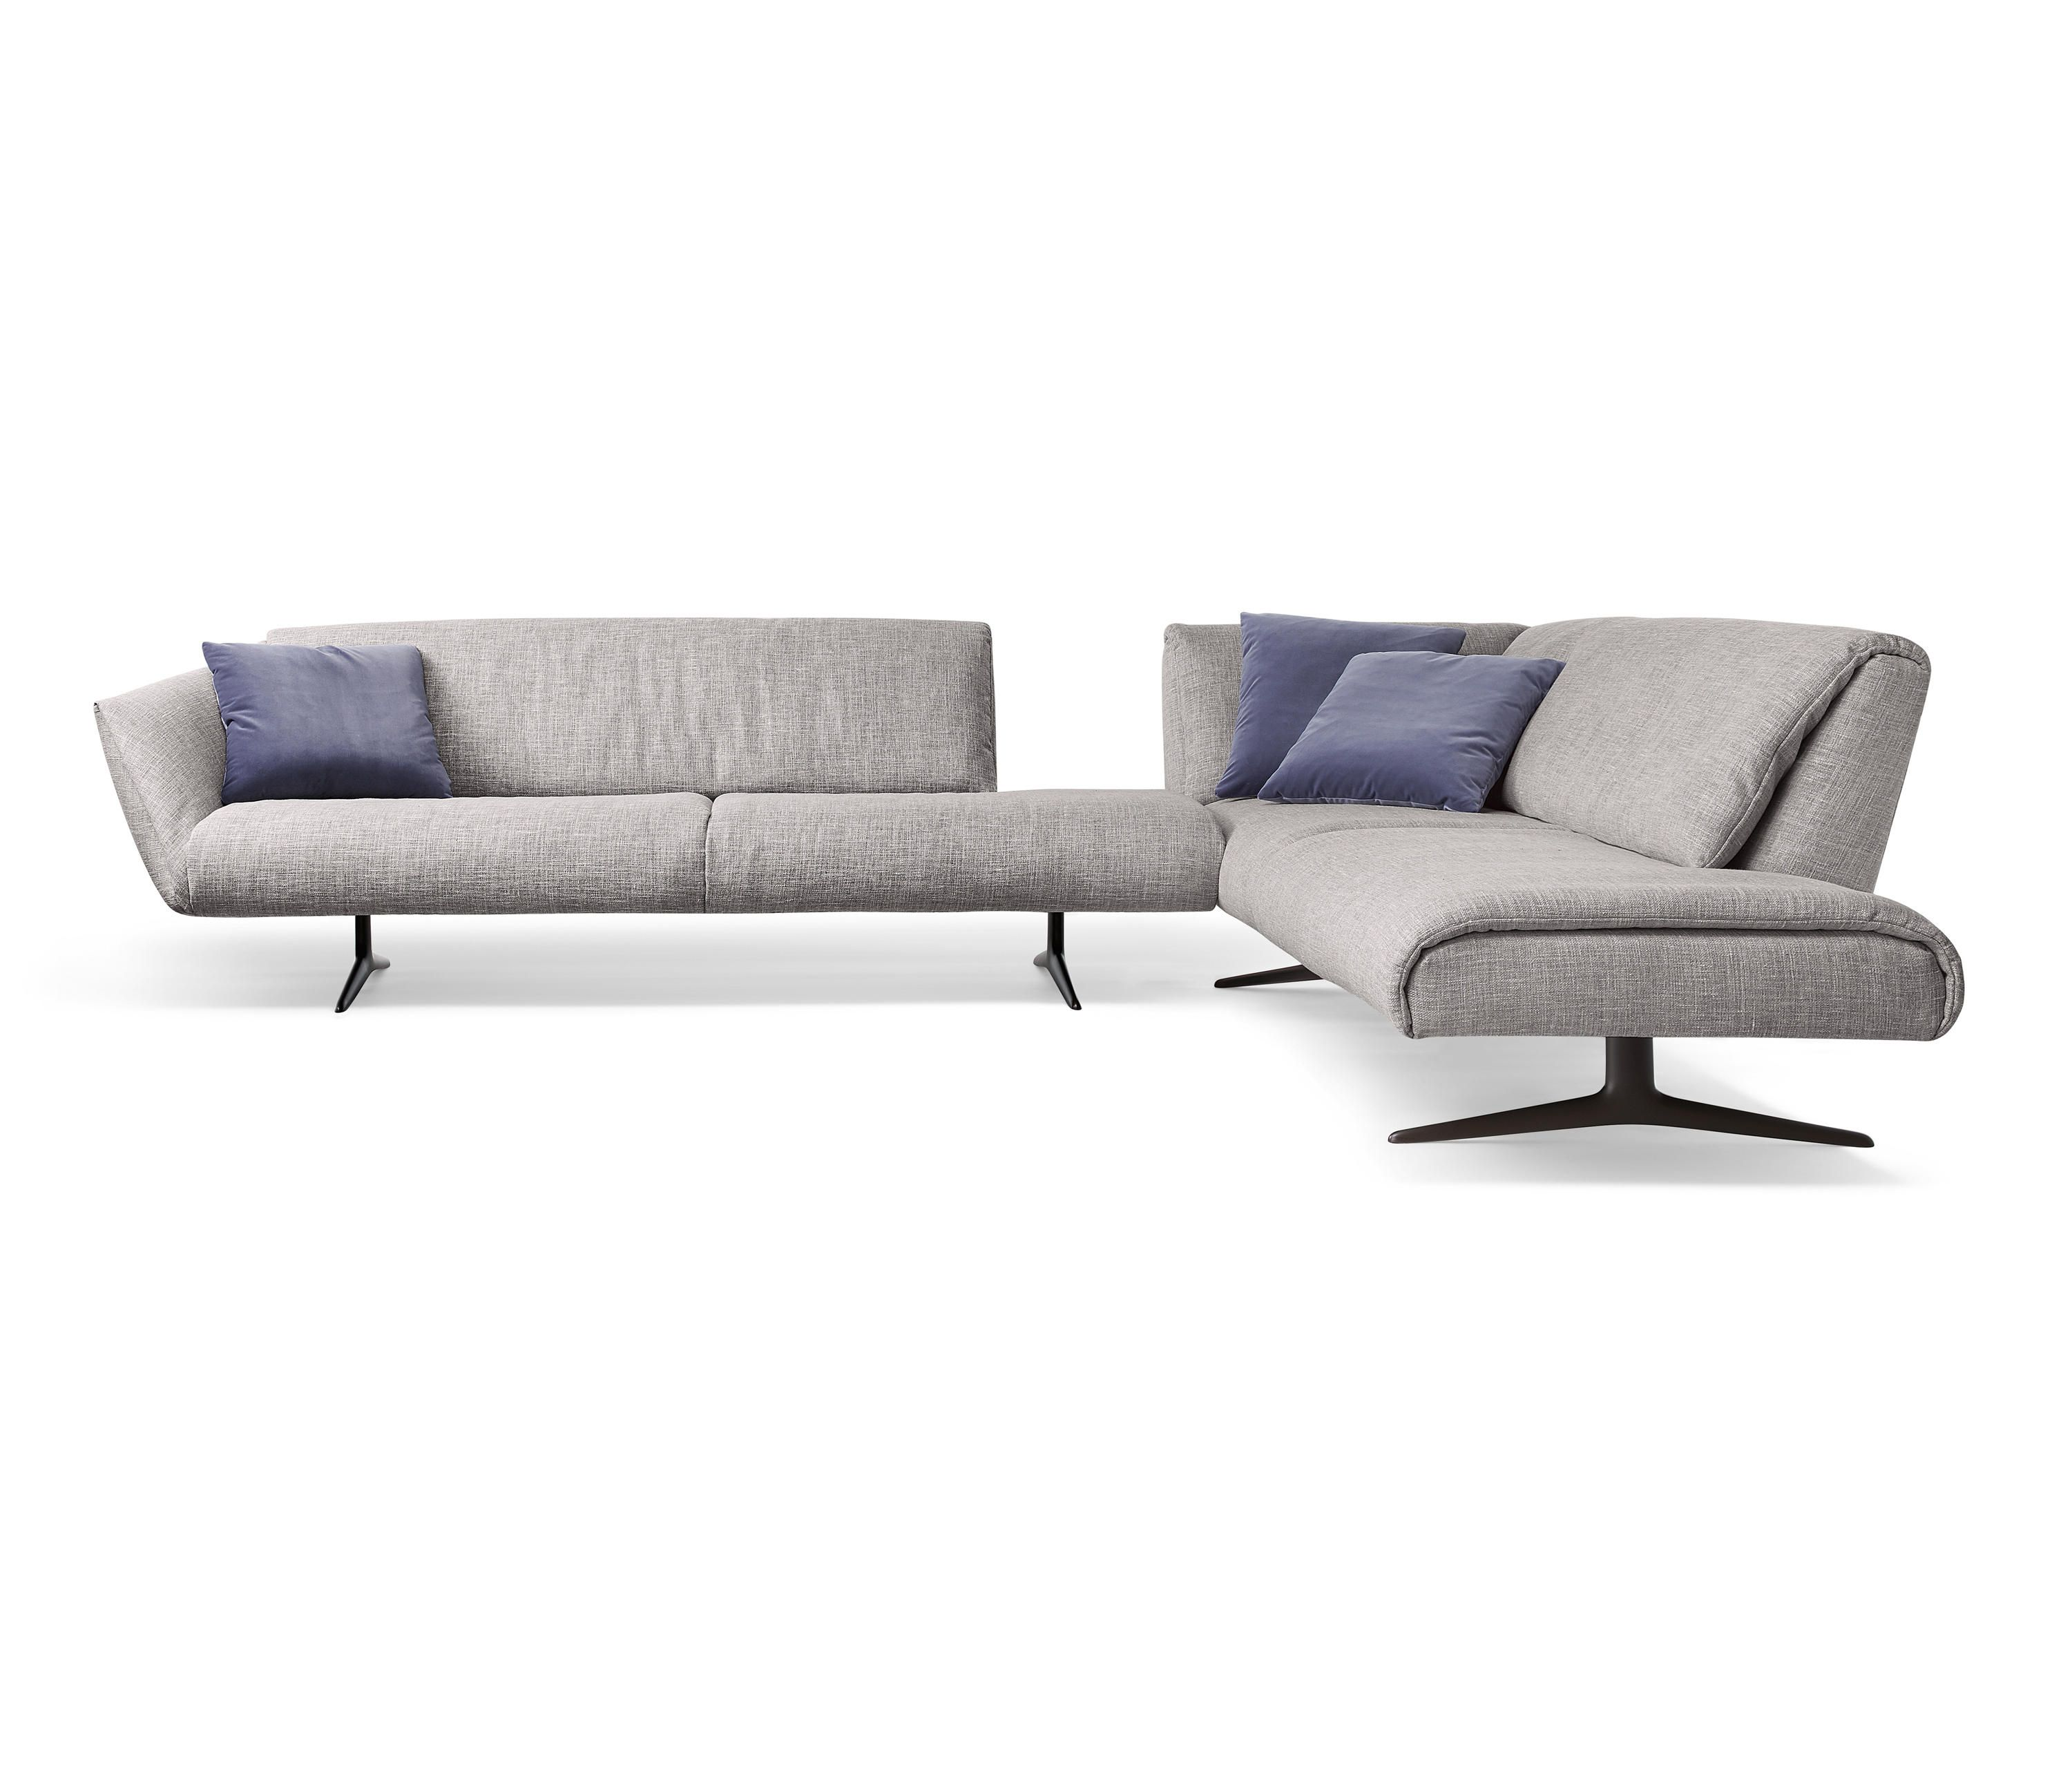 Bundle Sofa Designer Lounge Sofas From Walter Knoll All Information High Resolution Images Cads Catalogues Cont Walter Knoll Sofa Sofa Styling Sofa